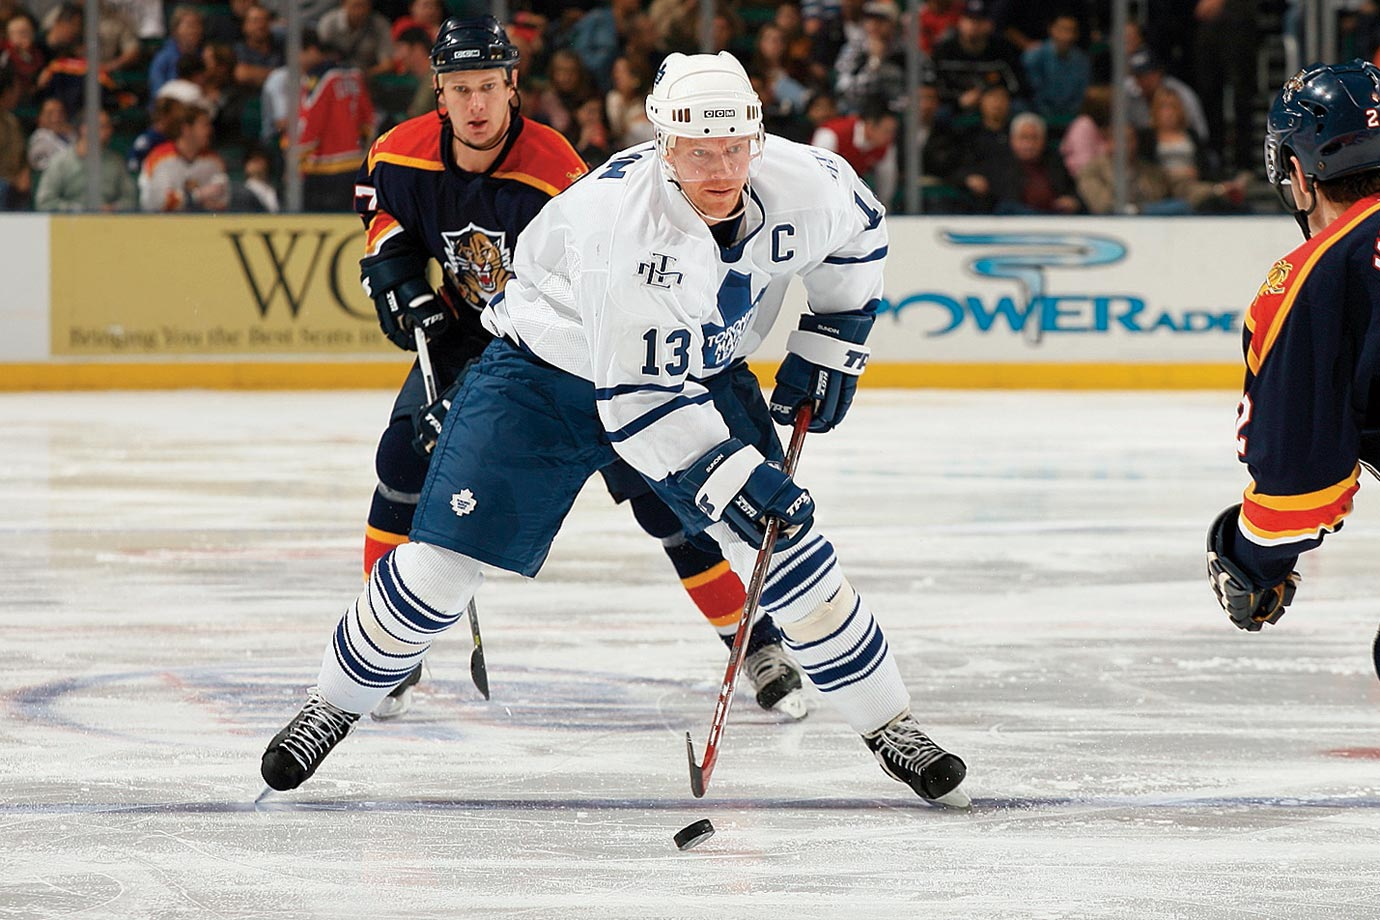 The first European player ever chosen first overall, the slick Swede was traded to Toronto in 1994 and became the Maple Leafs' captain as well as their all-time leading scorer. The 10-time All-Star was inducted into the Hockey Hall of Fame in 2012. — Notable picks: No. 2: Dave Chyzowski, LW, New York Islanders | No. 5: Bill Guerin, RW, New Jersey Devils | No. 19: Olaf Kolzig, G, Washington Capitals | No. 22: Adam Foote, D, Quebec Nordiques | No. 53: Nicklas Lidstrom, D, Detroit Red Wings | No. 113: Pavel Bure, RW, Vancouver Canucks | No. 221: Vladimir Konstantinov, D, Detroit Red Wings